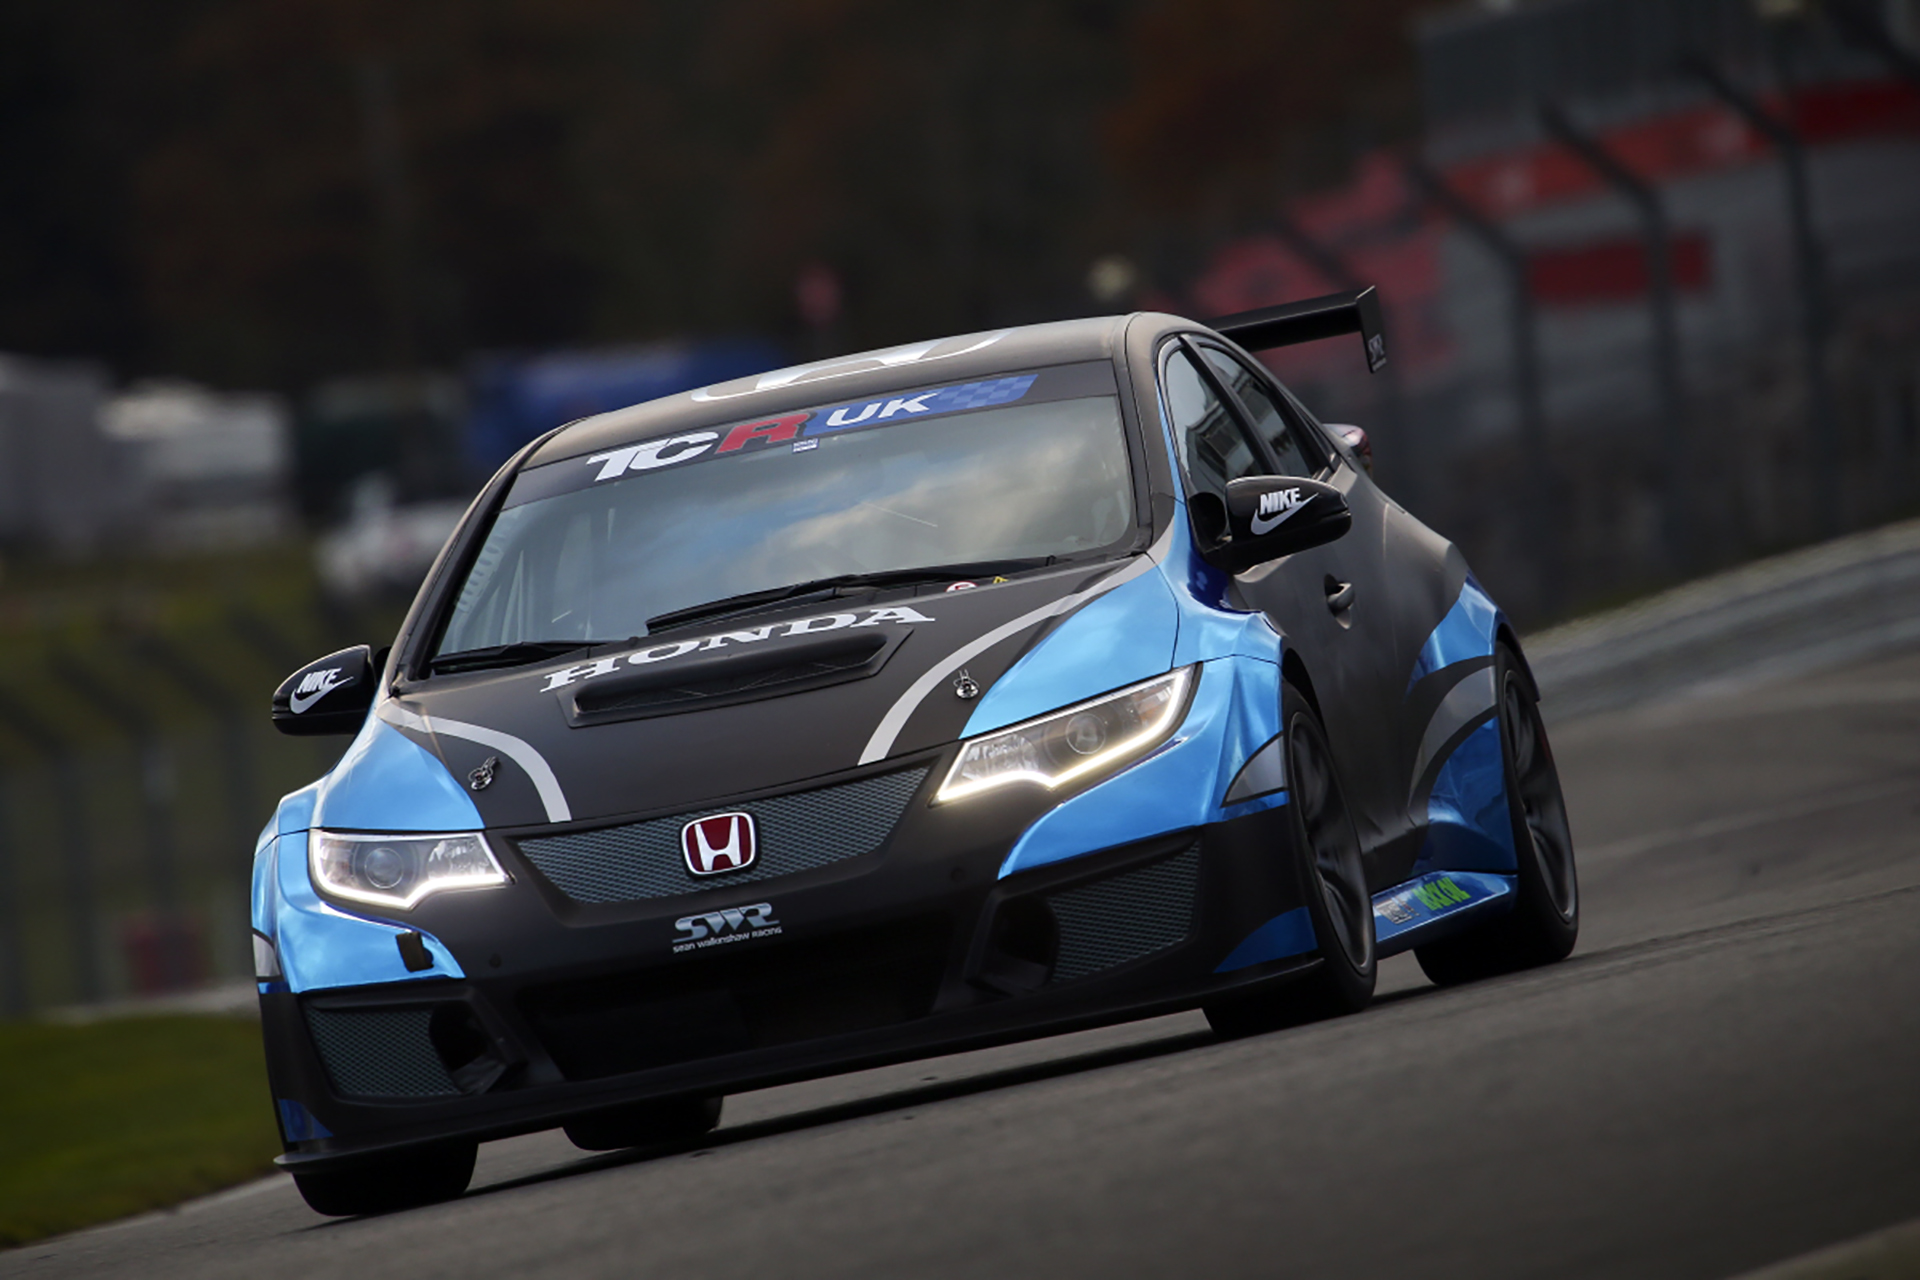 SWR Honda makes first appearance with eye-catching chrome livery.